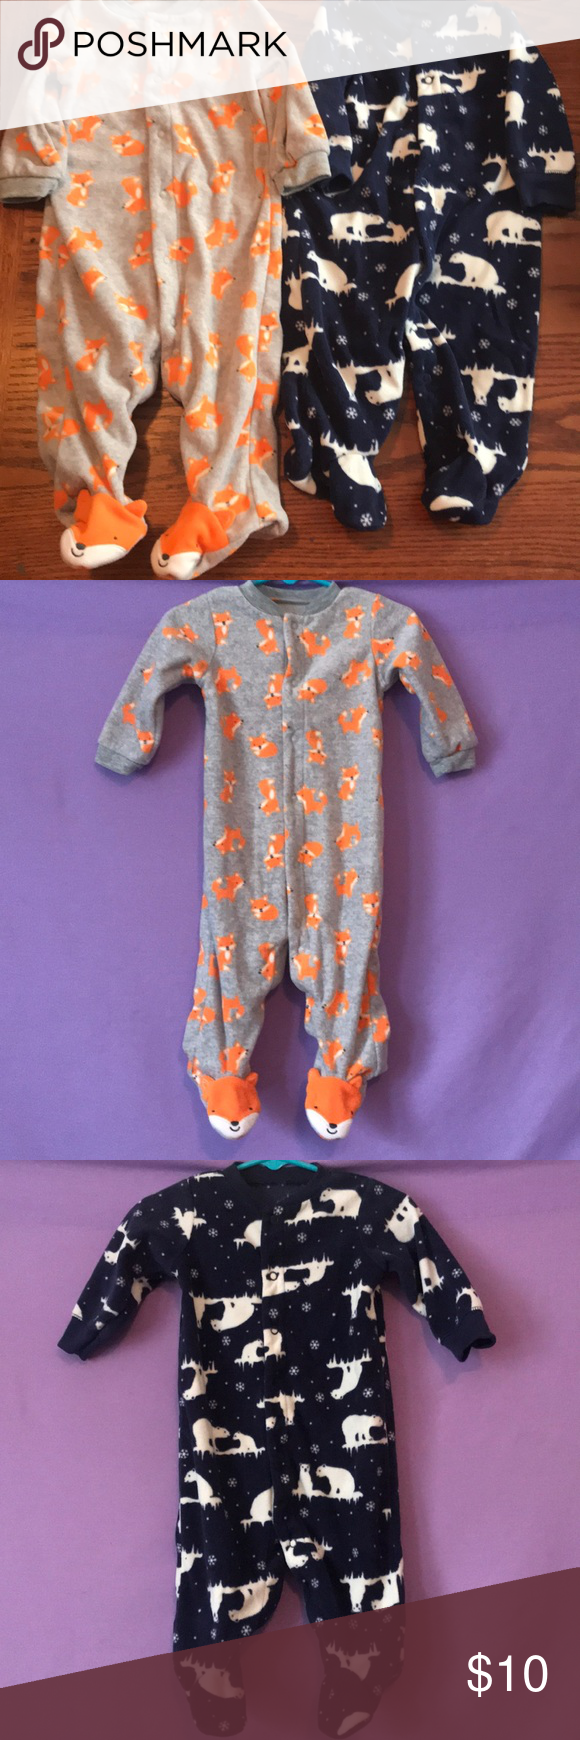 f8eeb1e5c3e9 Carter s Boys Fleece Footed Pajamas Size 6 months This is a set of 2 ...